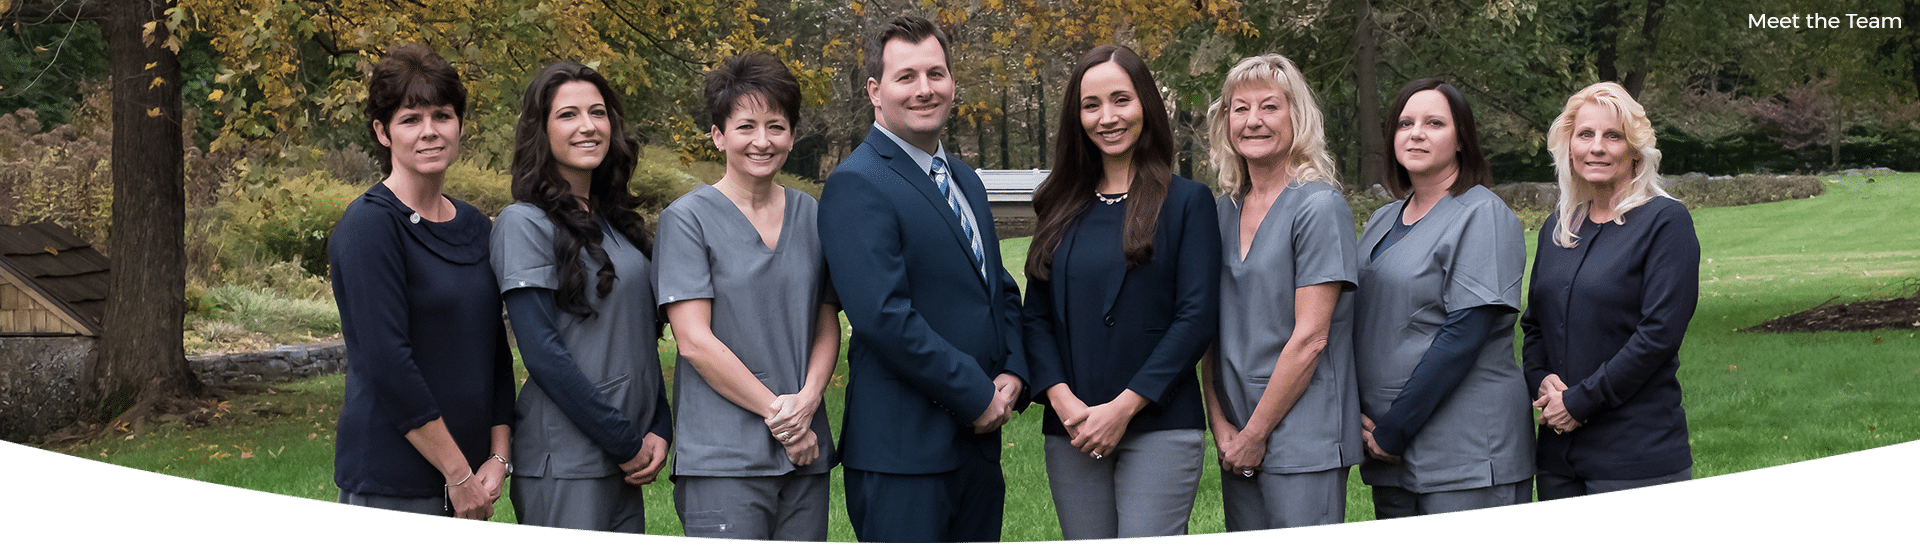 Meet the team Westover Family Dentistry Winchester VA